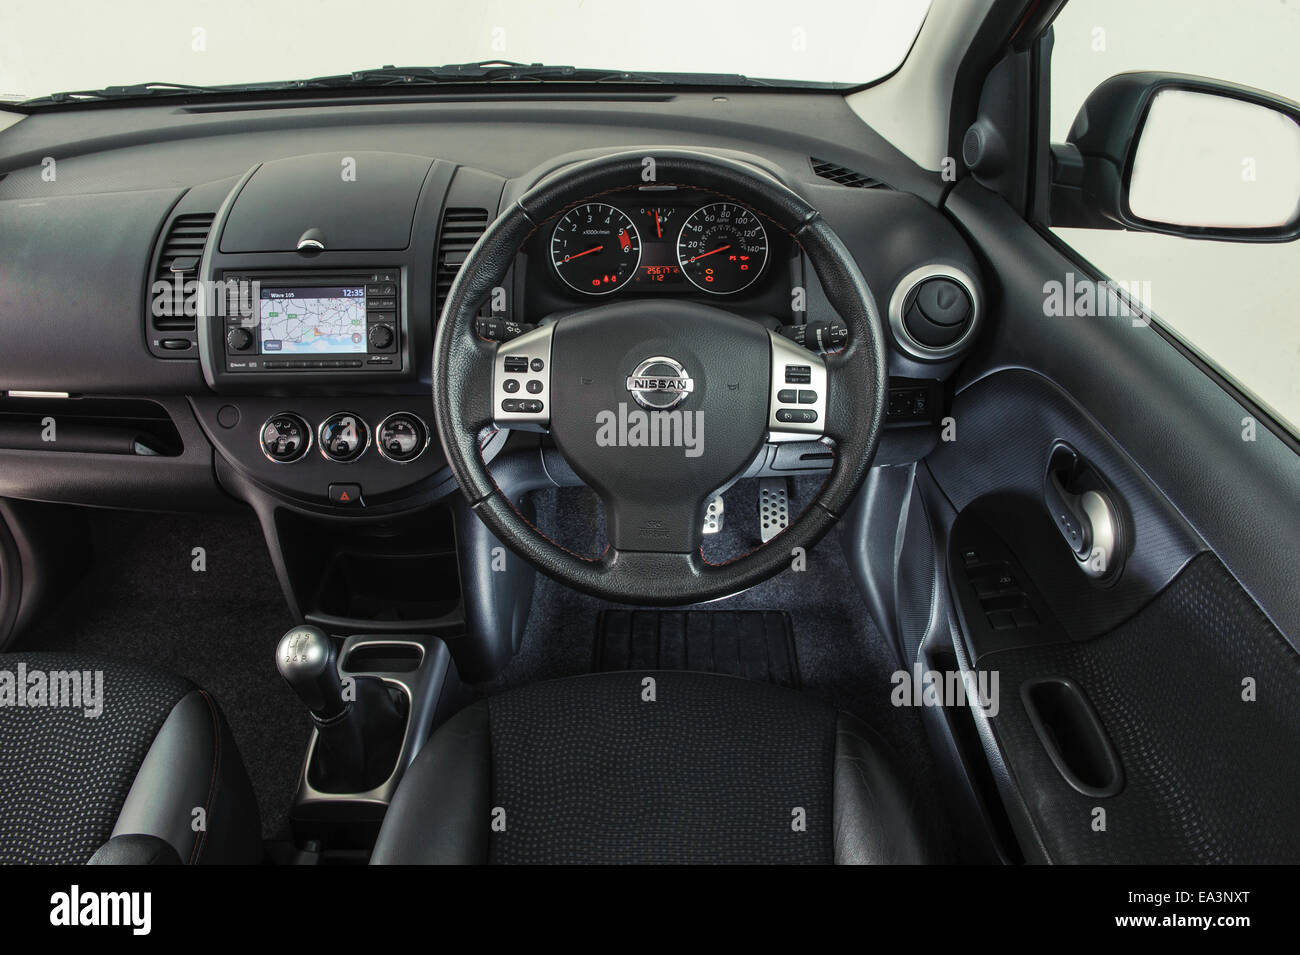 2009 Nissan Note Stock Photo